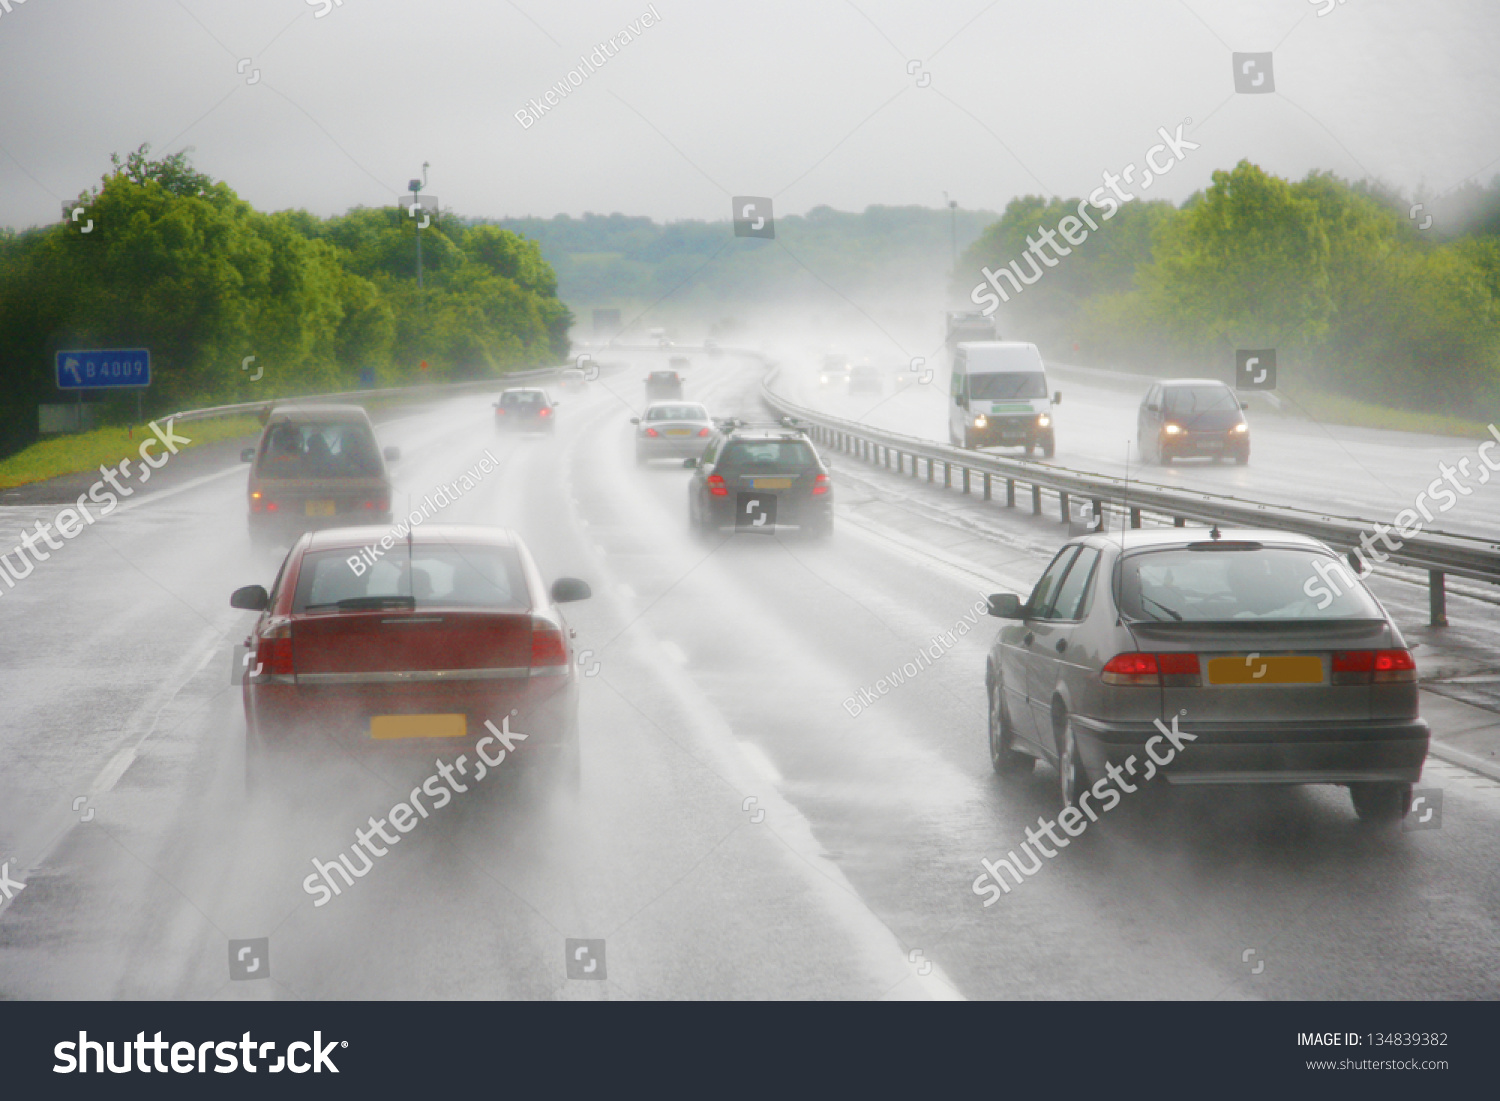 Driving in adverse conditions essay